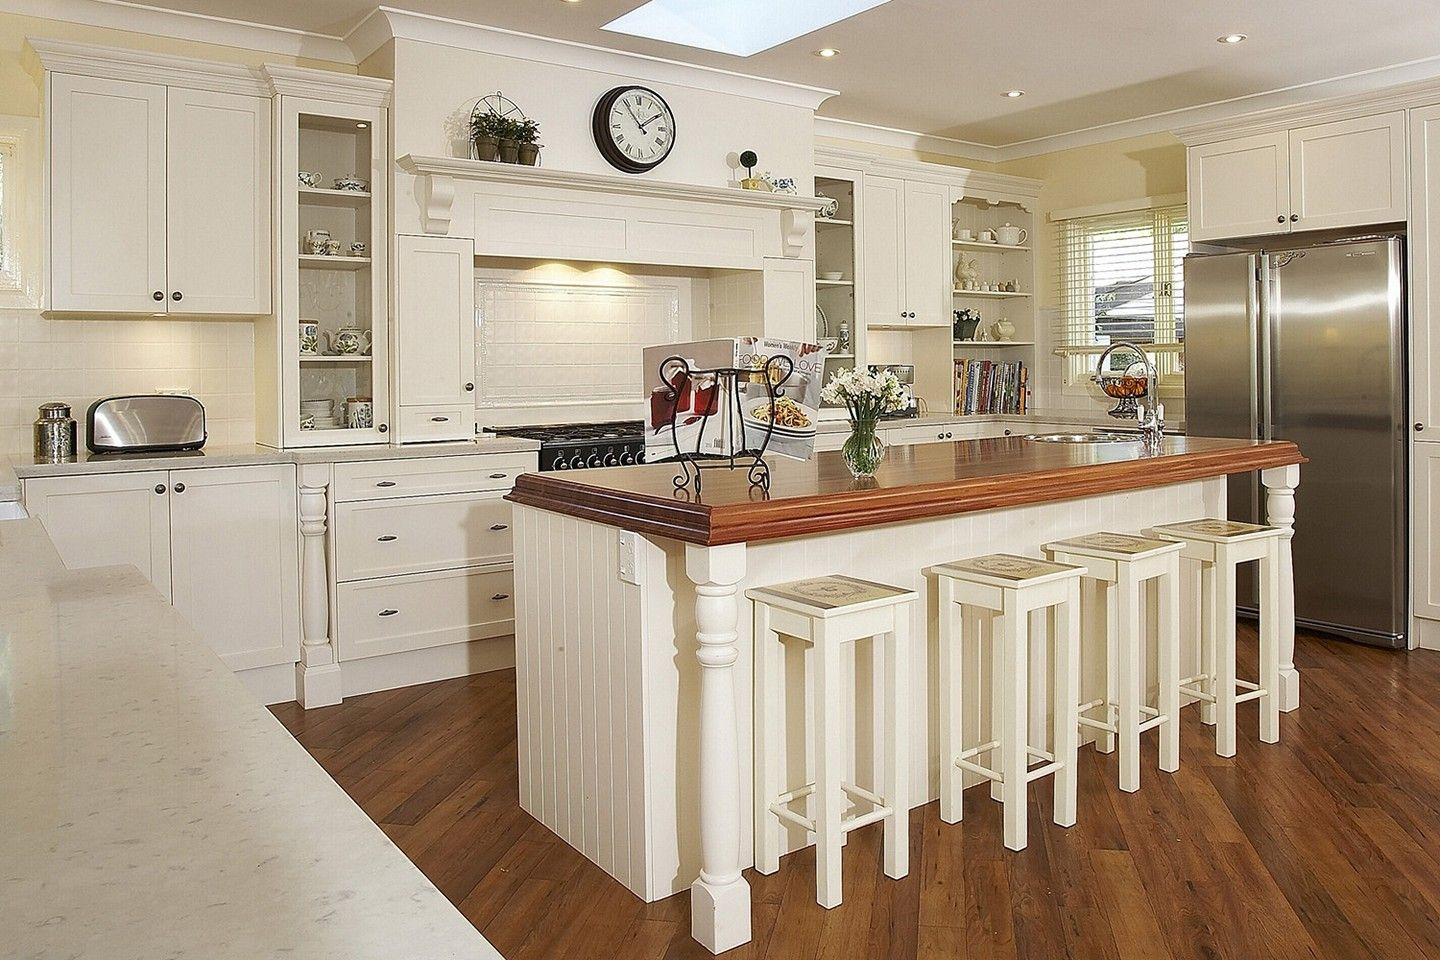 French Country Kitchen Cabinets Decor Best Ideas About Kitchens Pinterest Country Kitchen Designs French Kitchen Design French Country Kitchens